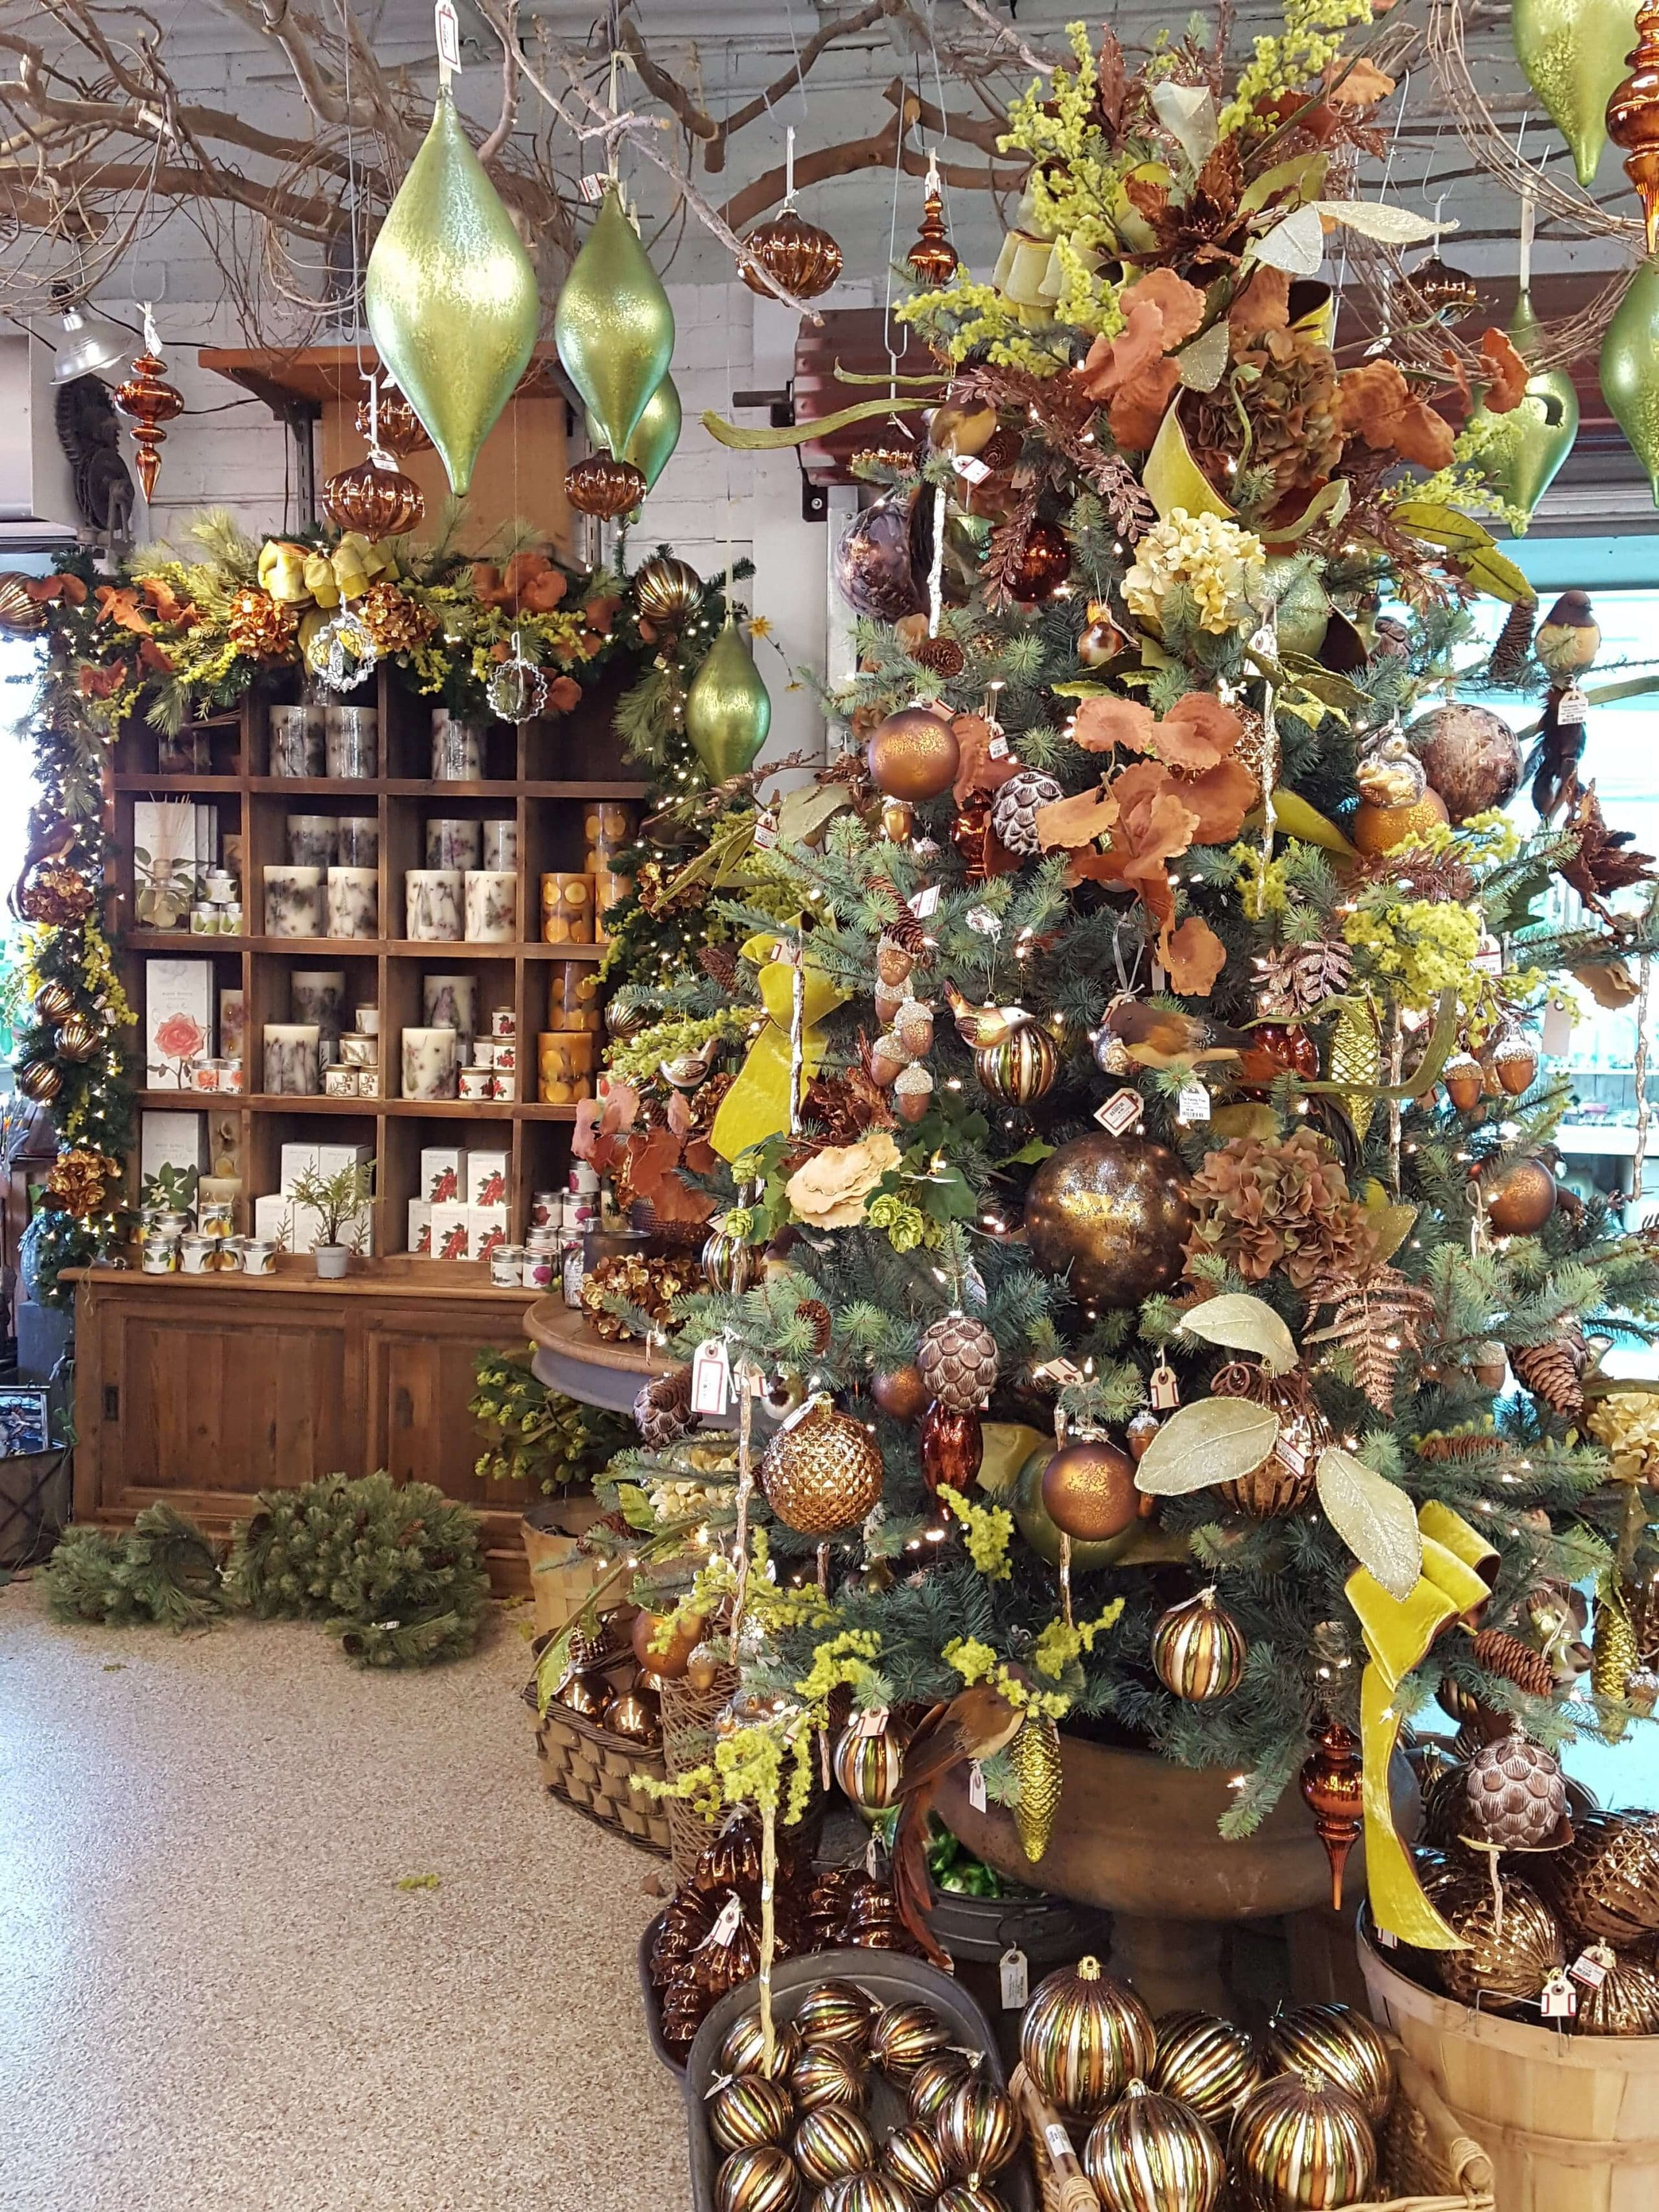 Unique Gifts and Decor for the Home and Garden